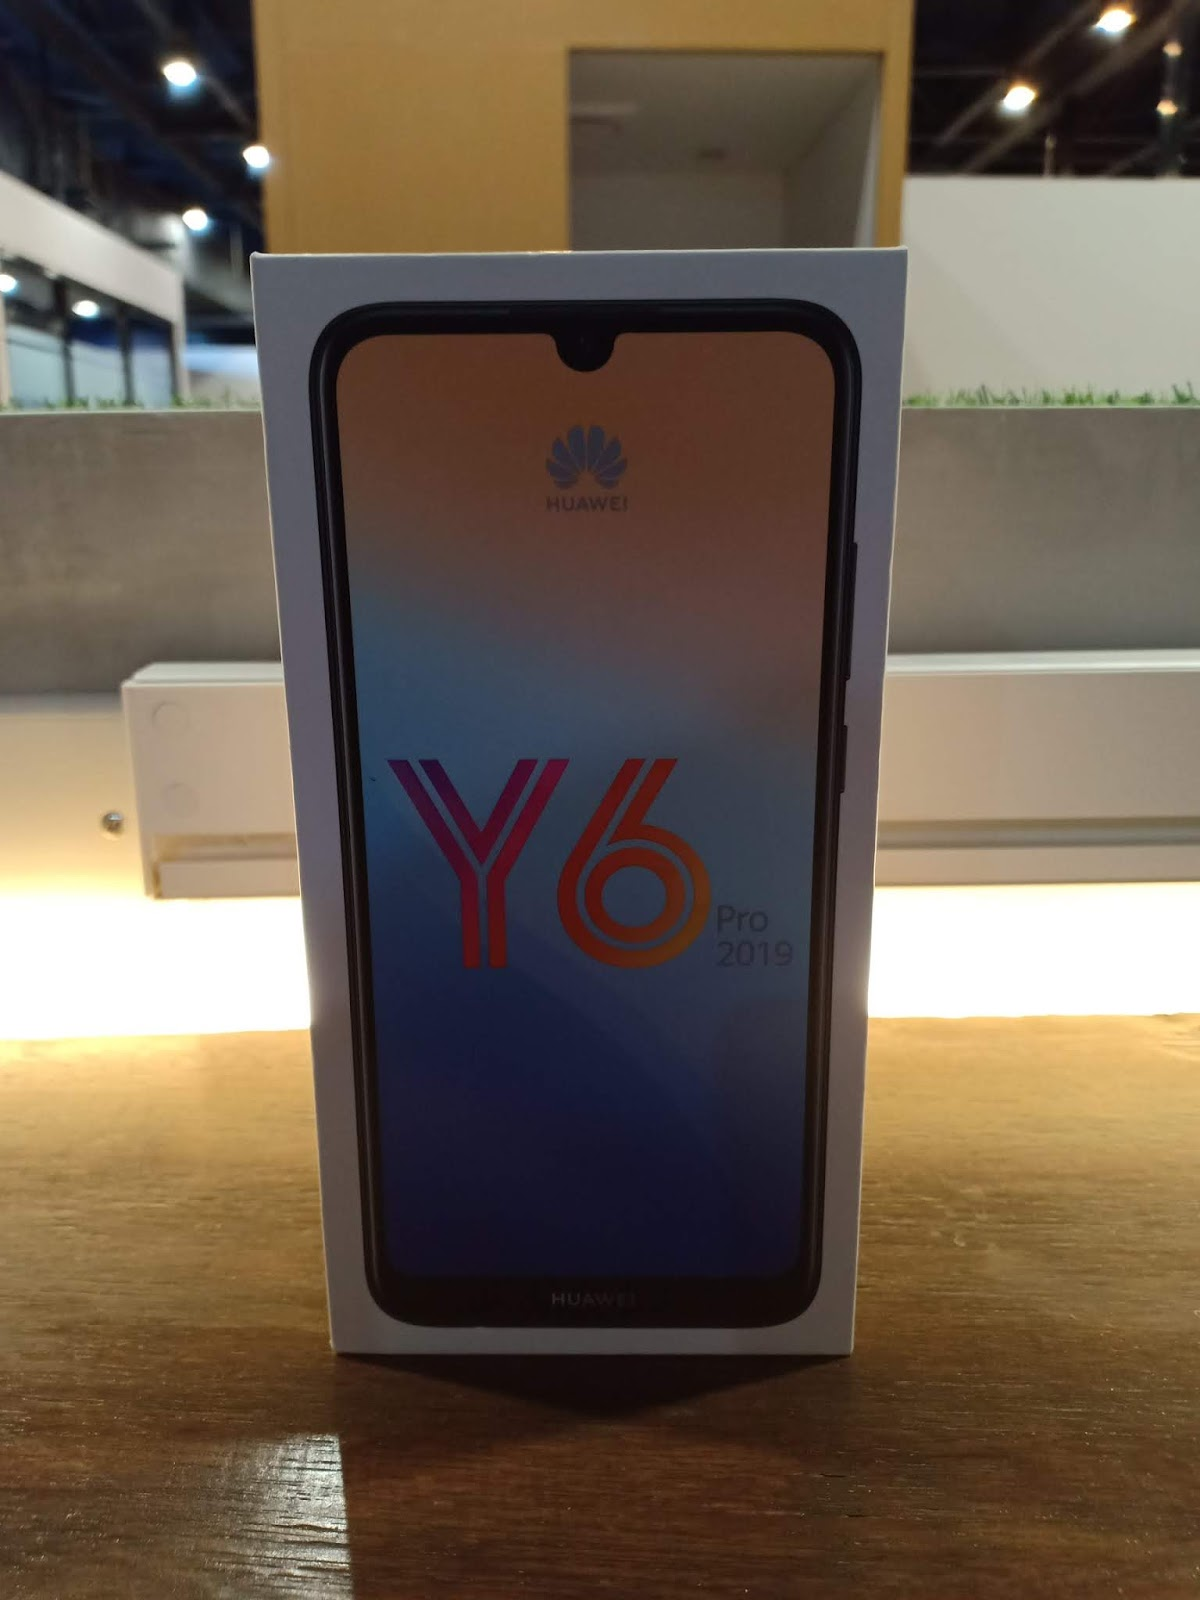 Huawei Y6 Pro 2019 Unboxing, First Look